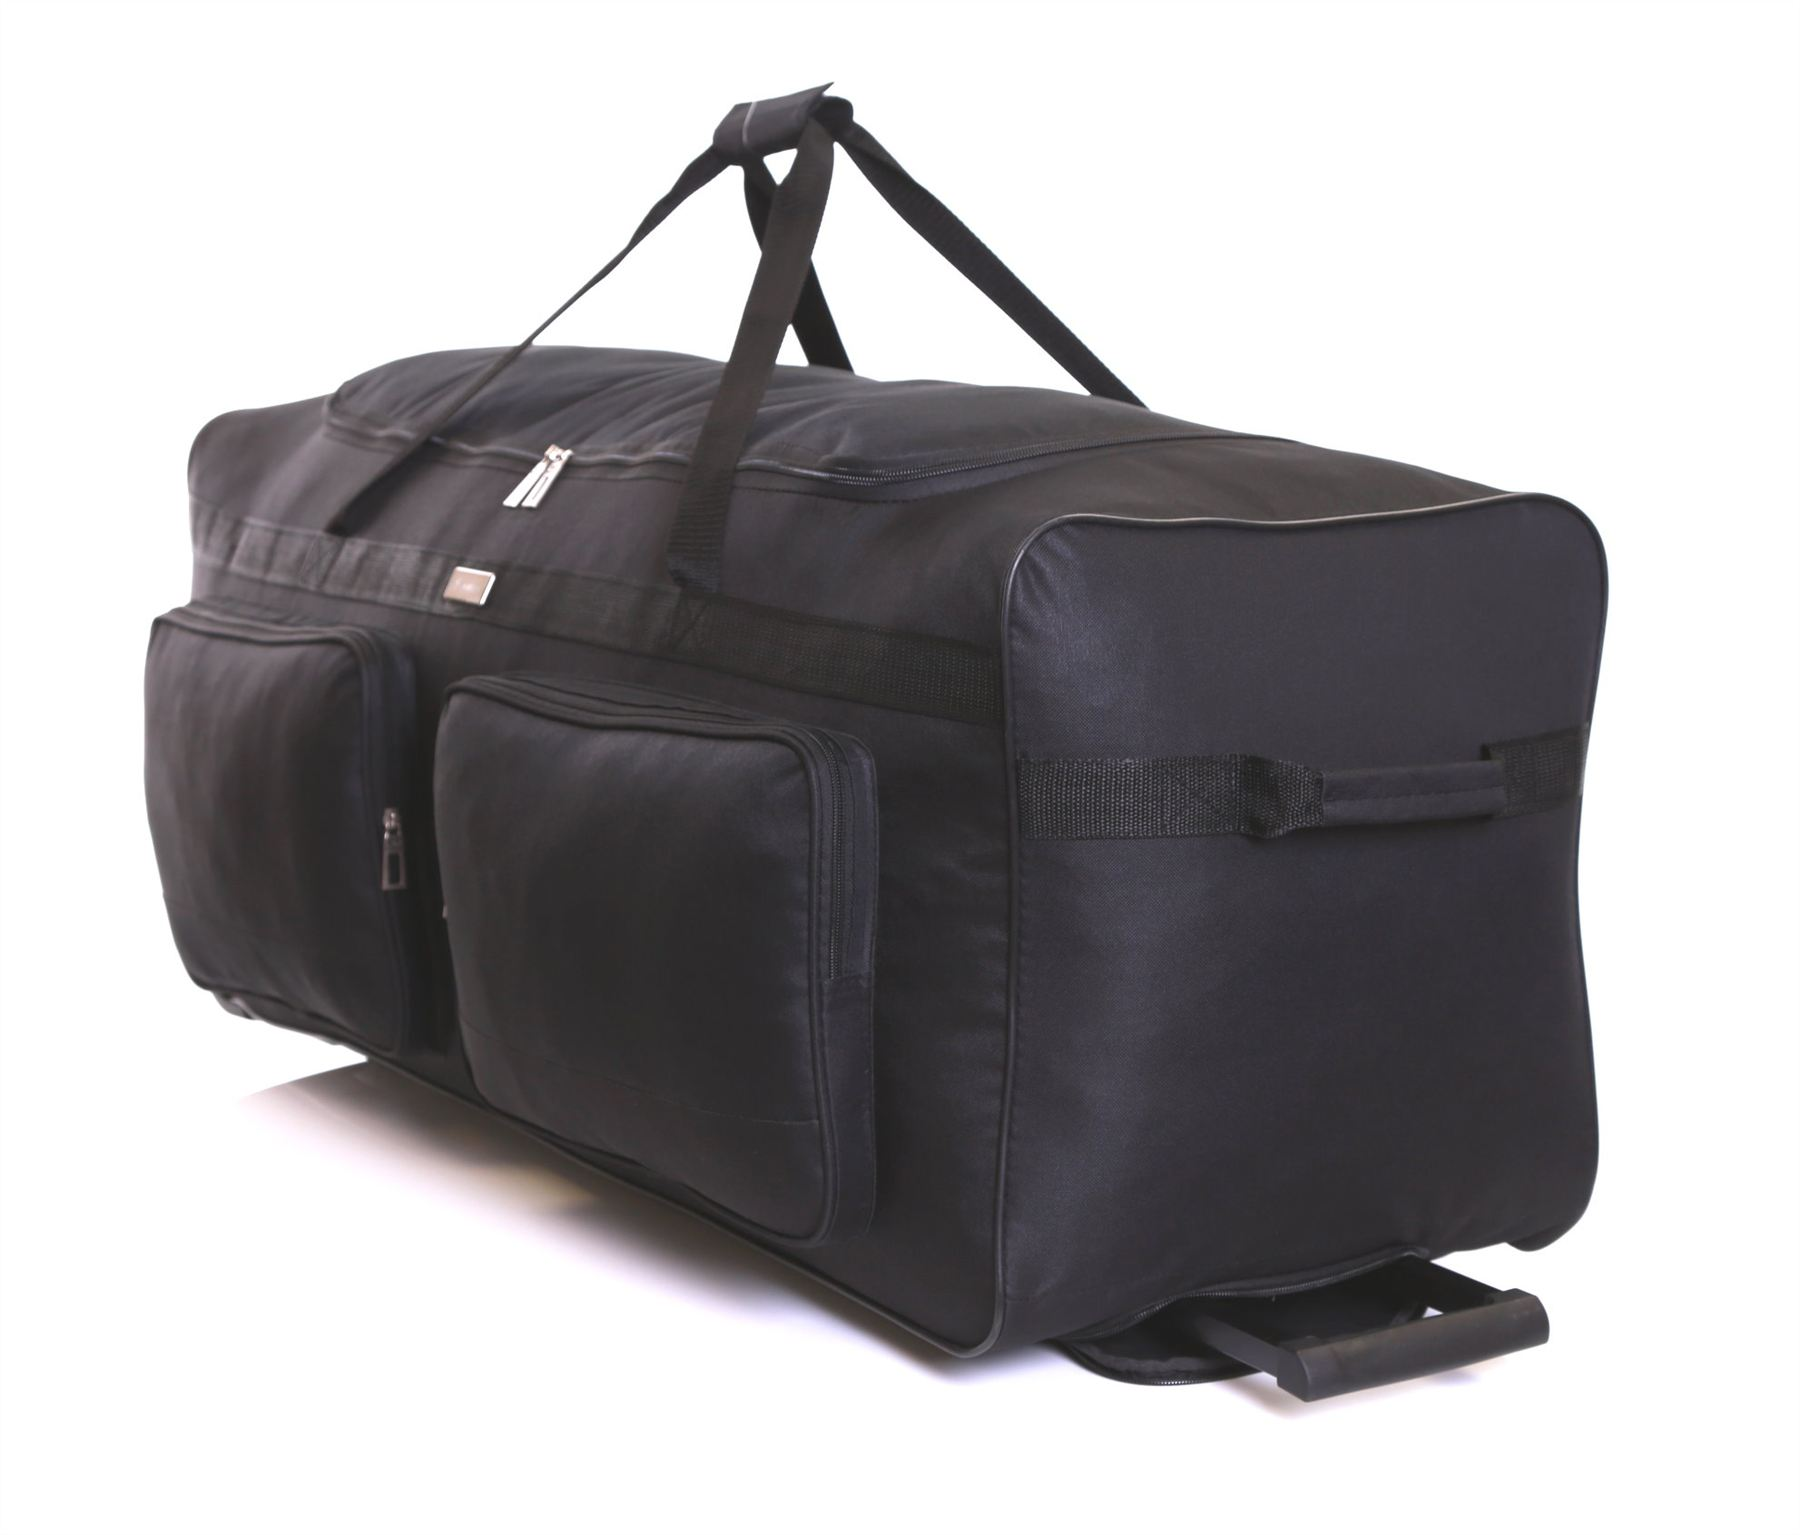 Hand Luggage Bag With Wheels